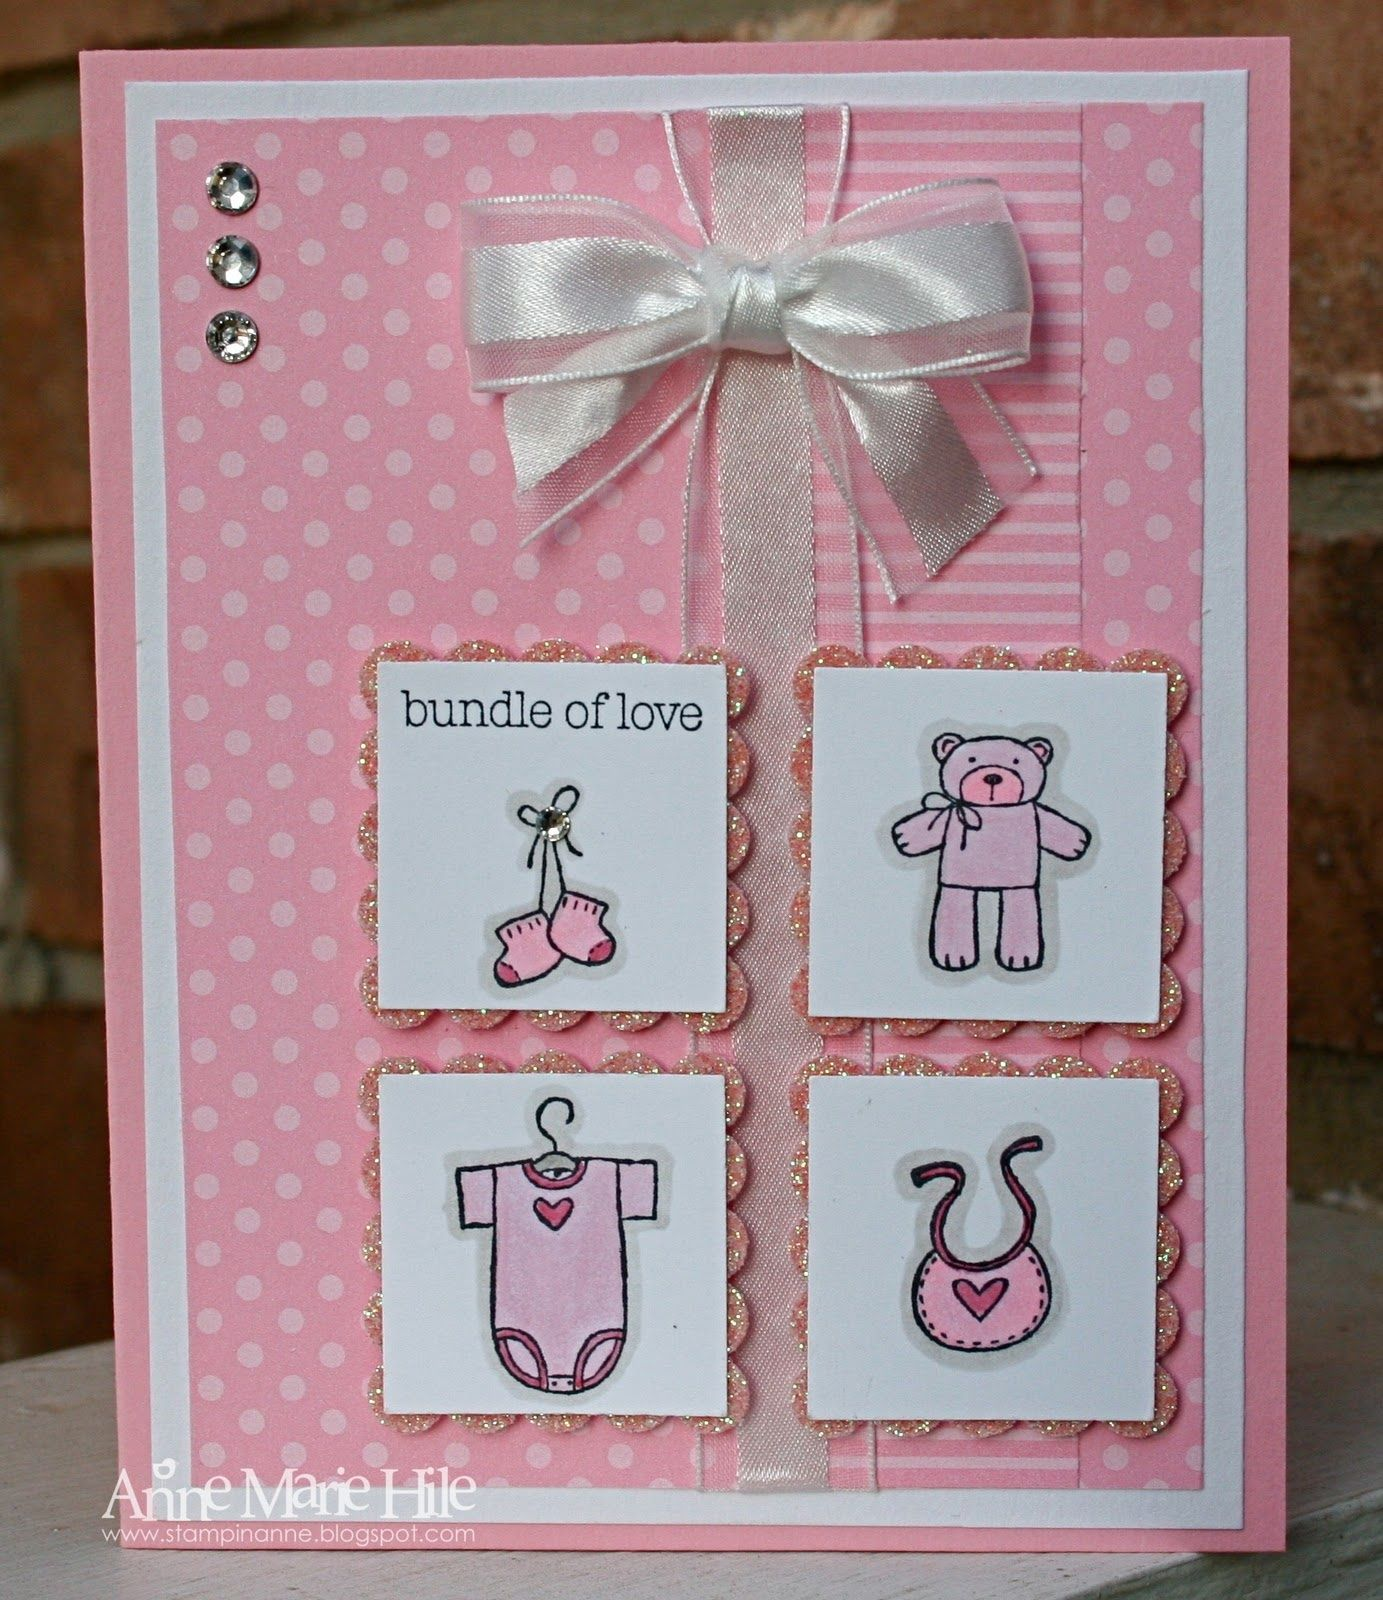 stampin+up+cards+on+pinterest | Share | Carte scrapbooking, Carte ...